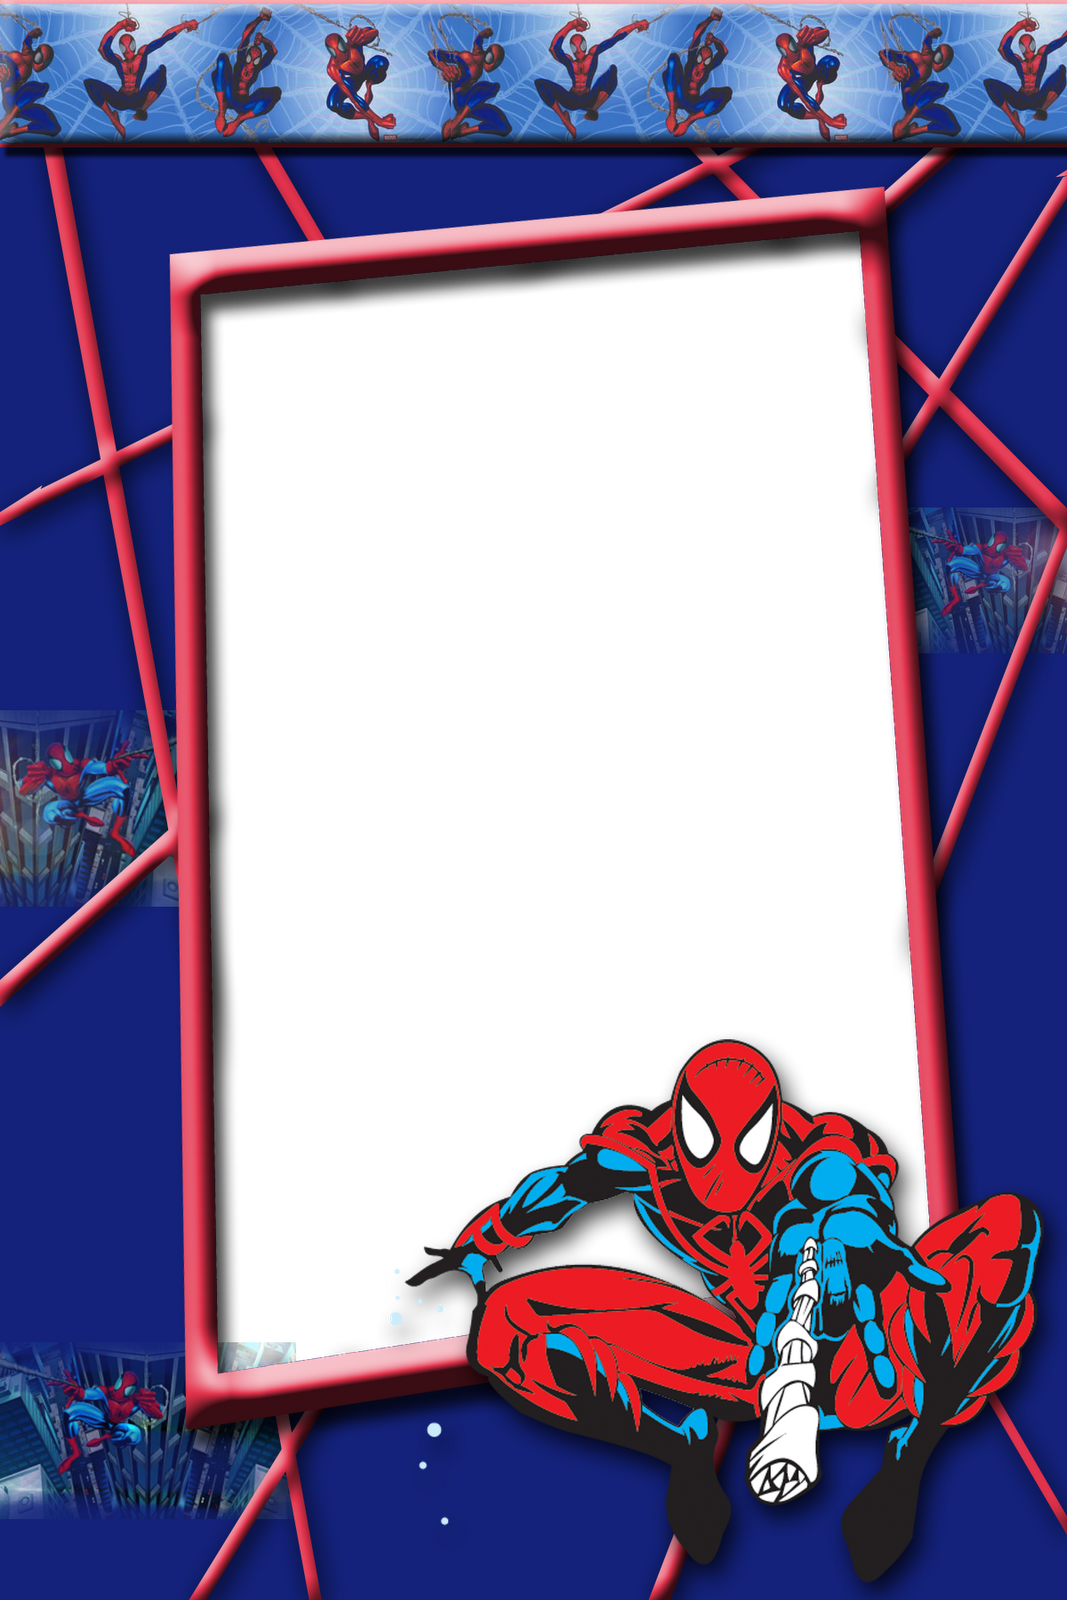 Pin by Dede paper on paper-party set:superhero   Frame, Spiderman ...